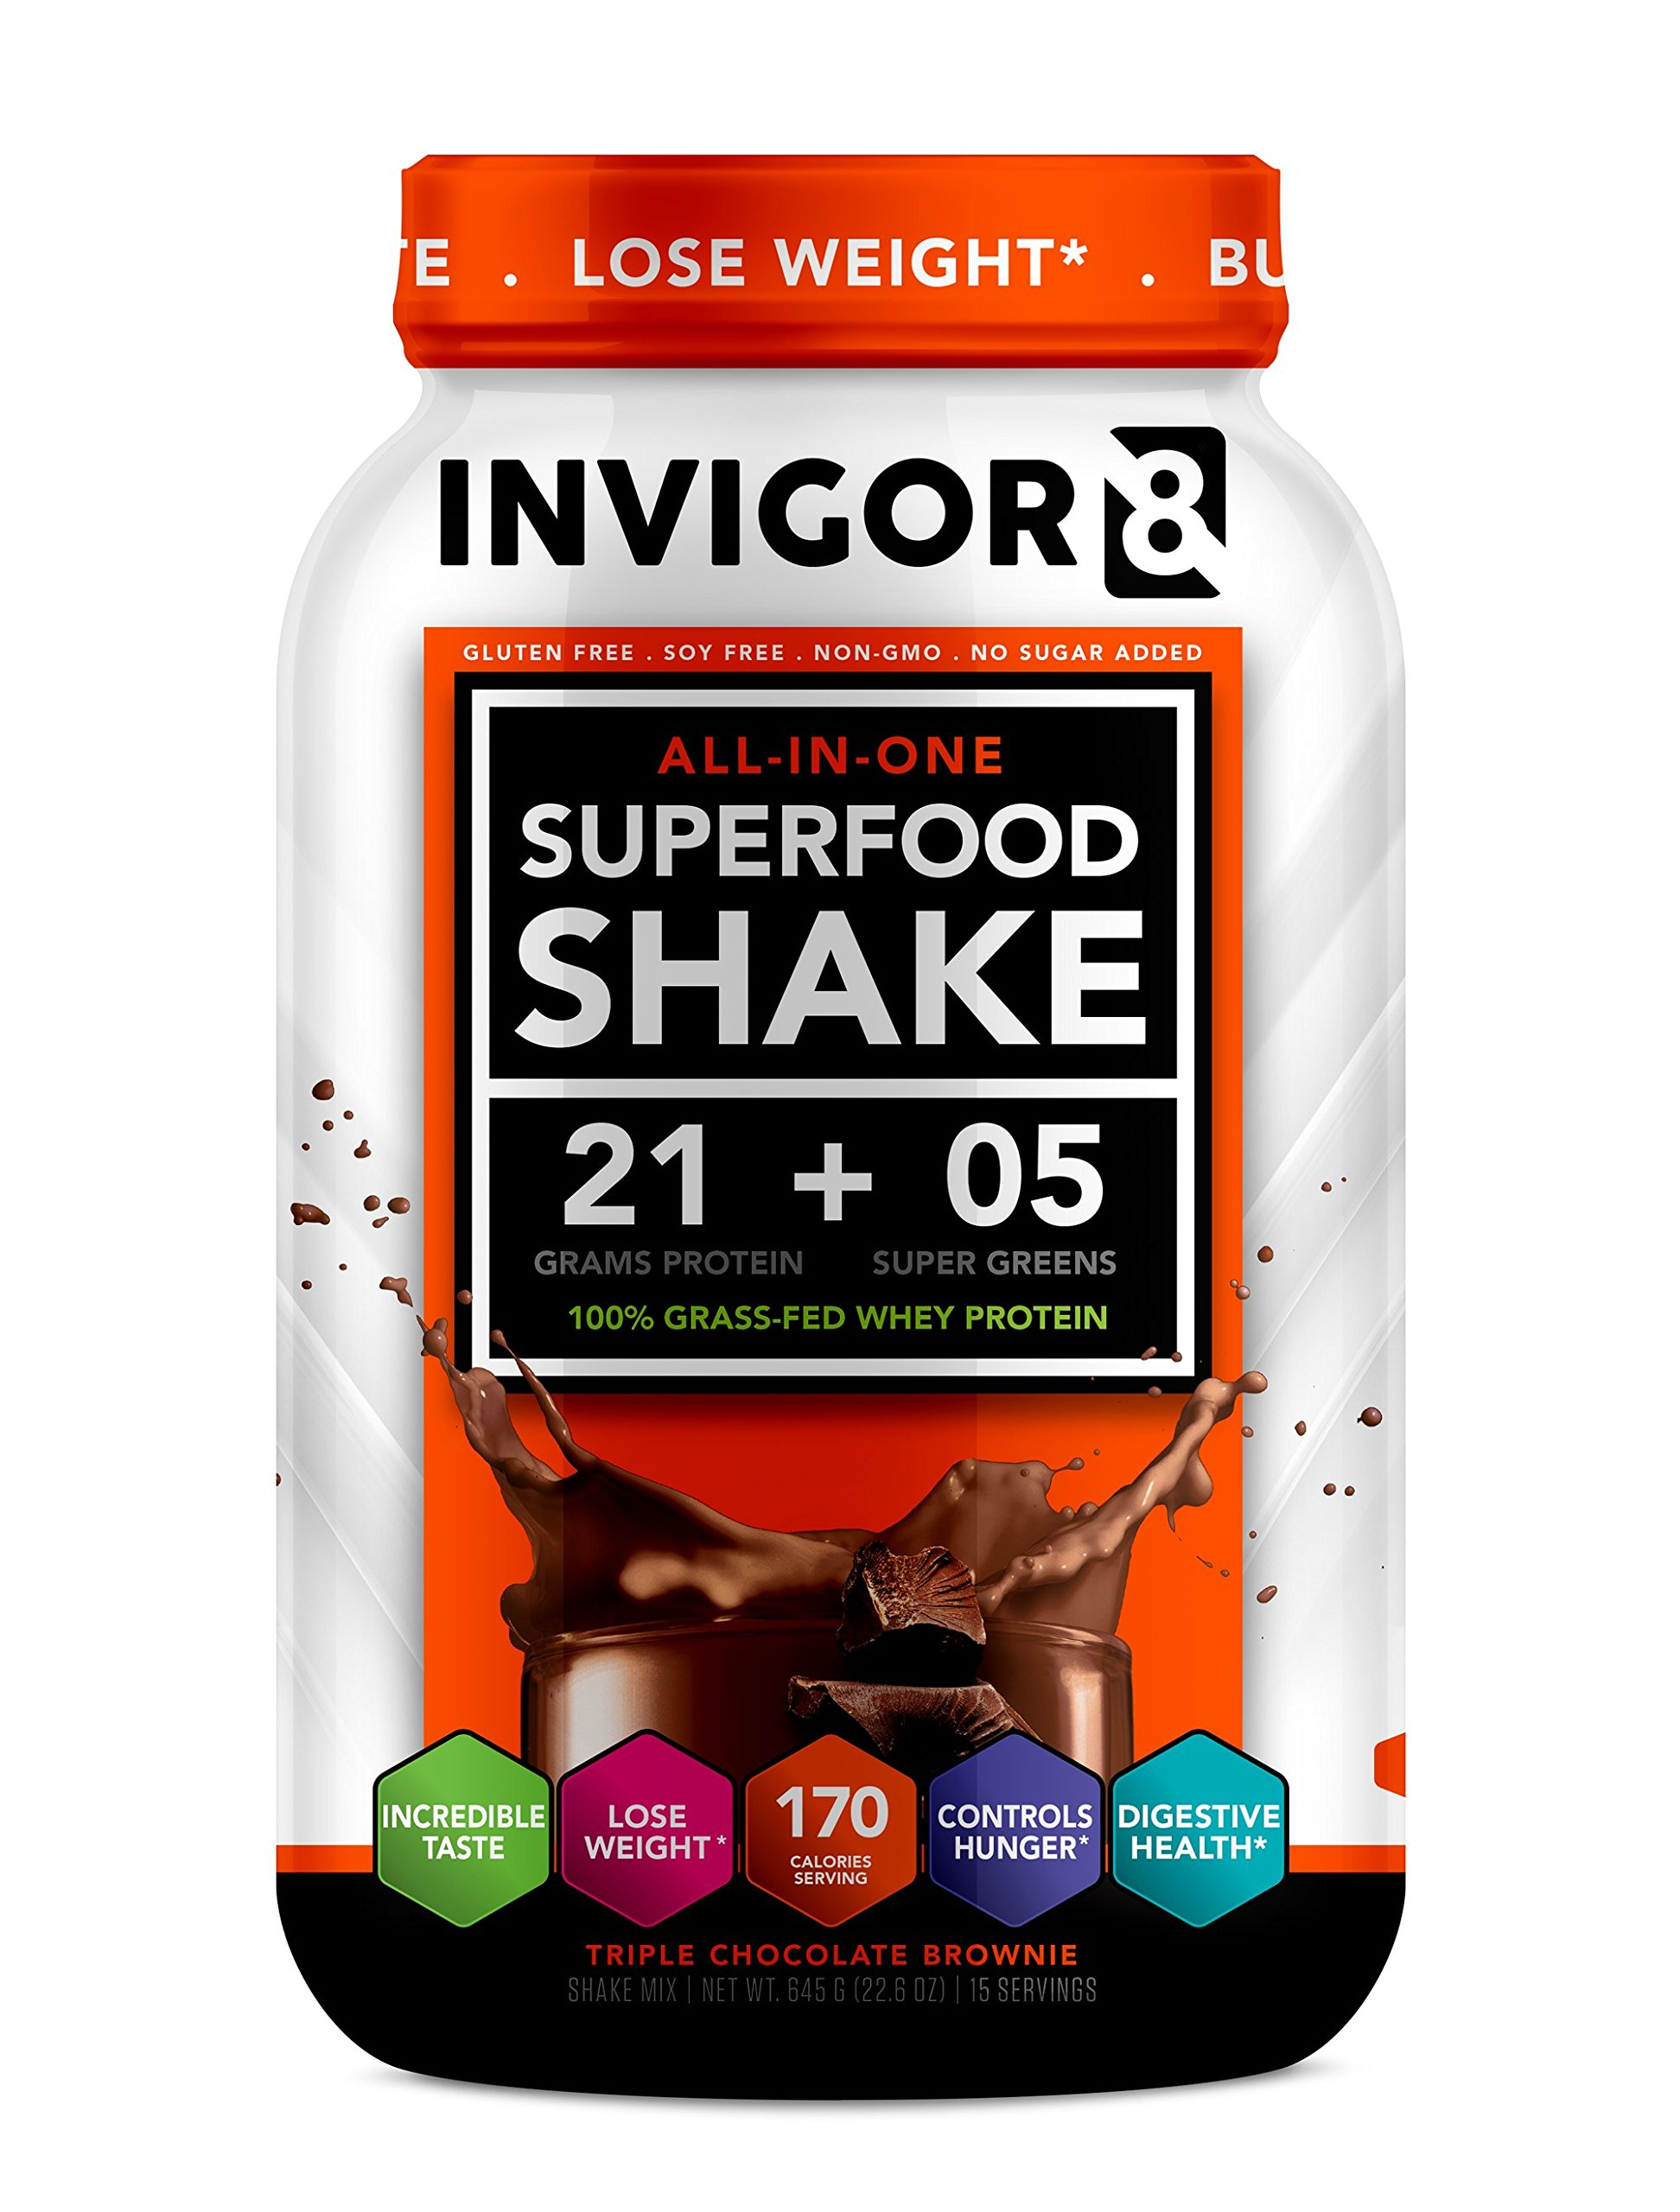 INVIGOR8 Superfood Shake (4 Pack Chocolate) Gluten-Free Non GMO Meal Replacement Grass-Fed Whey Protein Shake with Probiotics and Omega 3 (2580g) by INVIGOR8